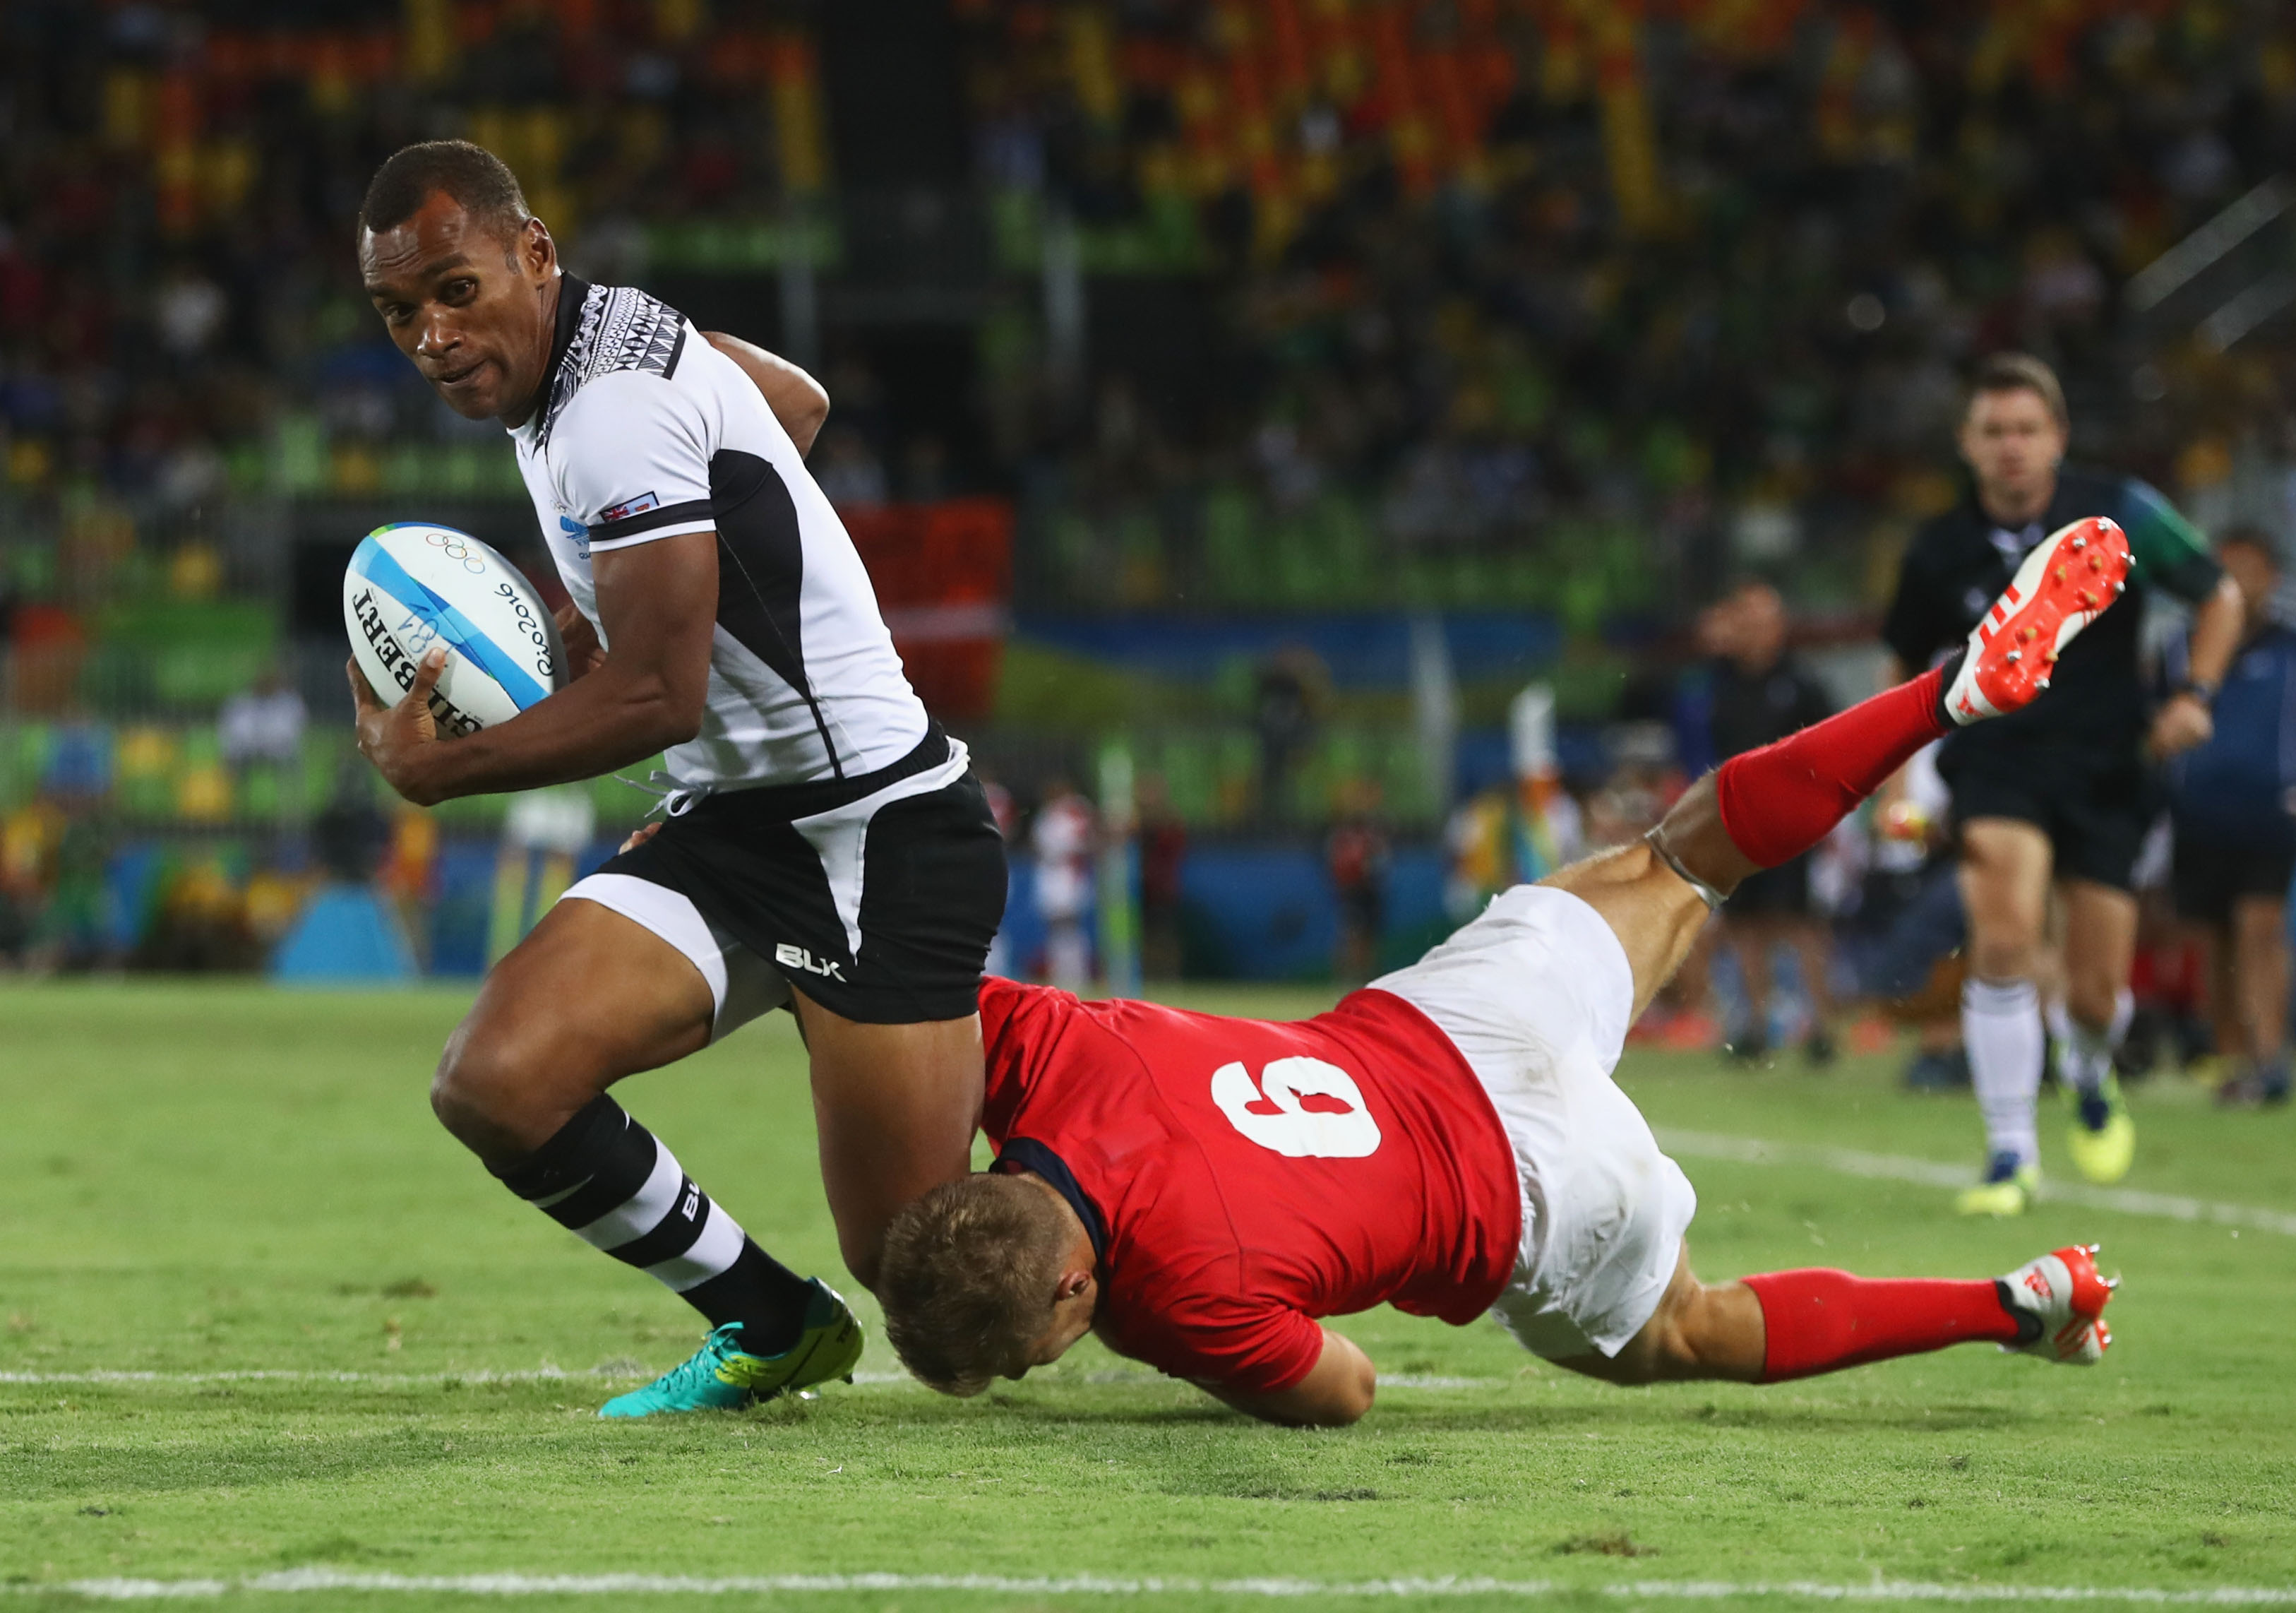 Fiji Wins First Gold Medal Ever, Country Loses It GettyImages 588558022